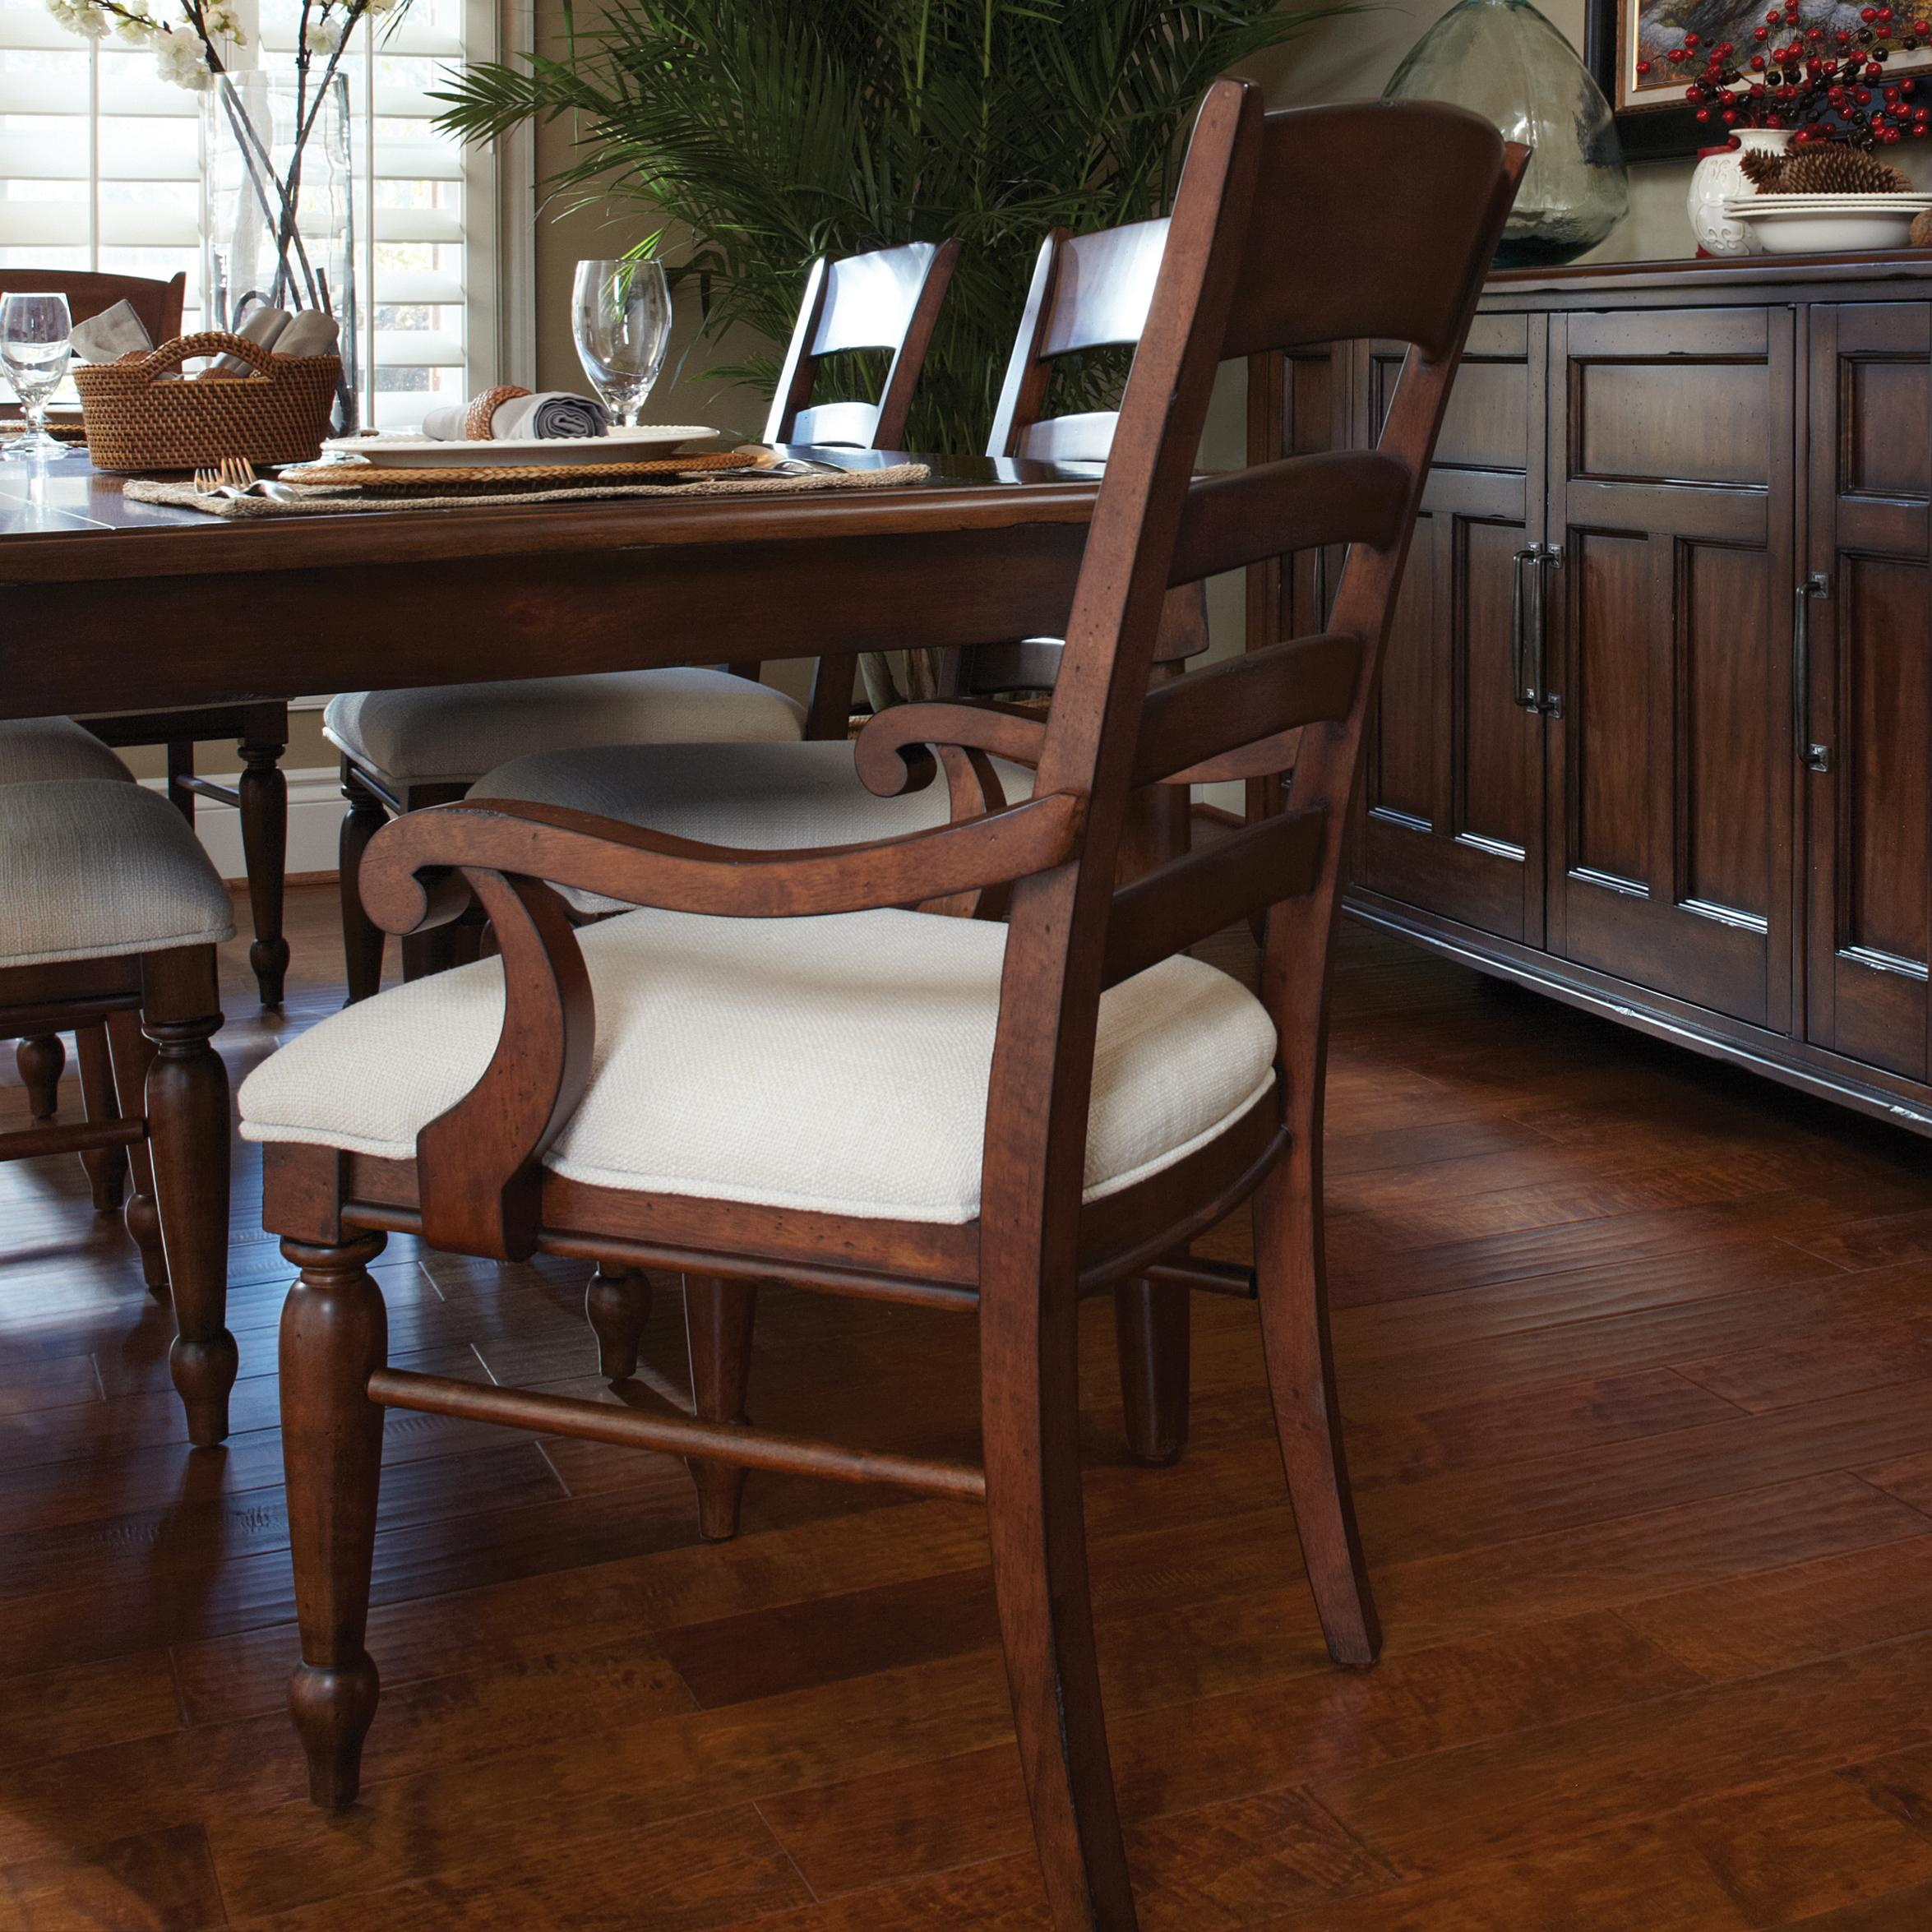 Carolina Preserves By Klaussner Blue Ridge Cherry Ladder Back Arm Chair Dream Home Furniture